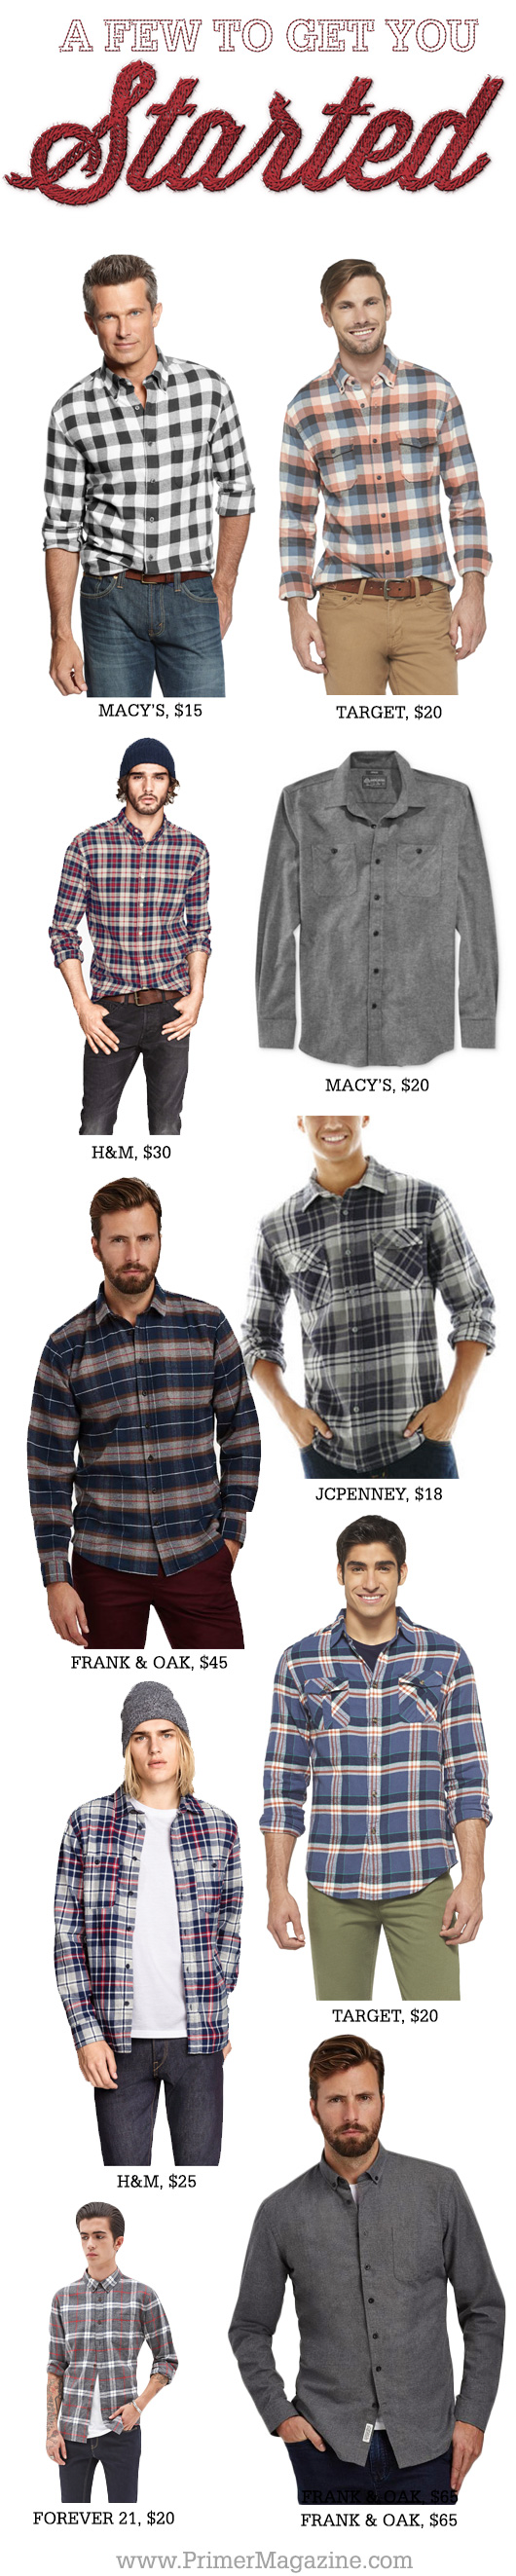 Collage of flannel shirt options